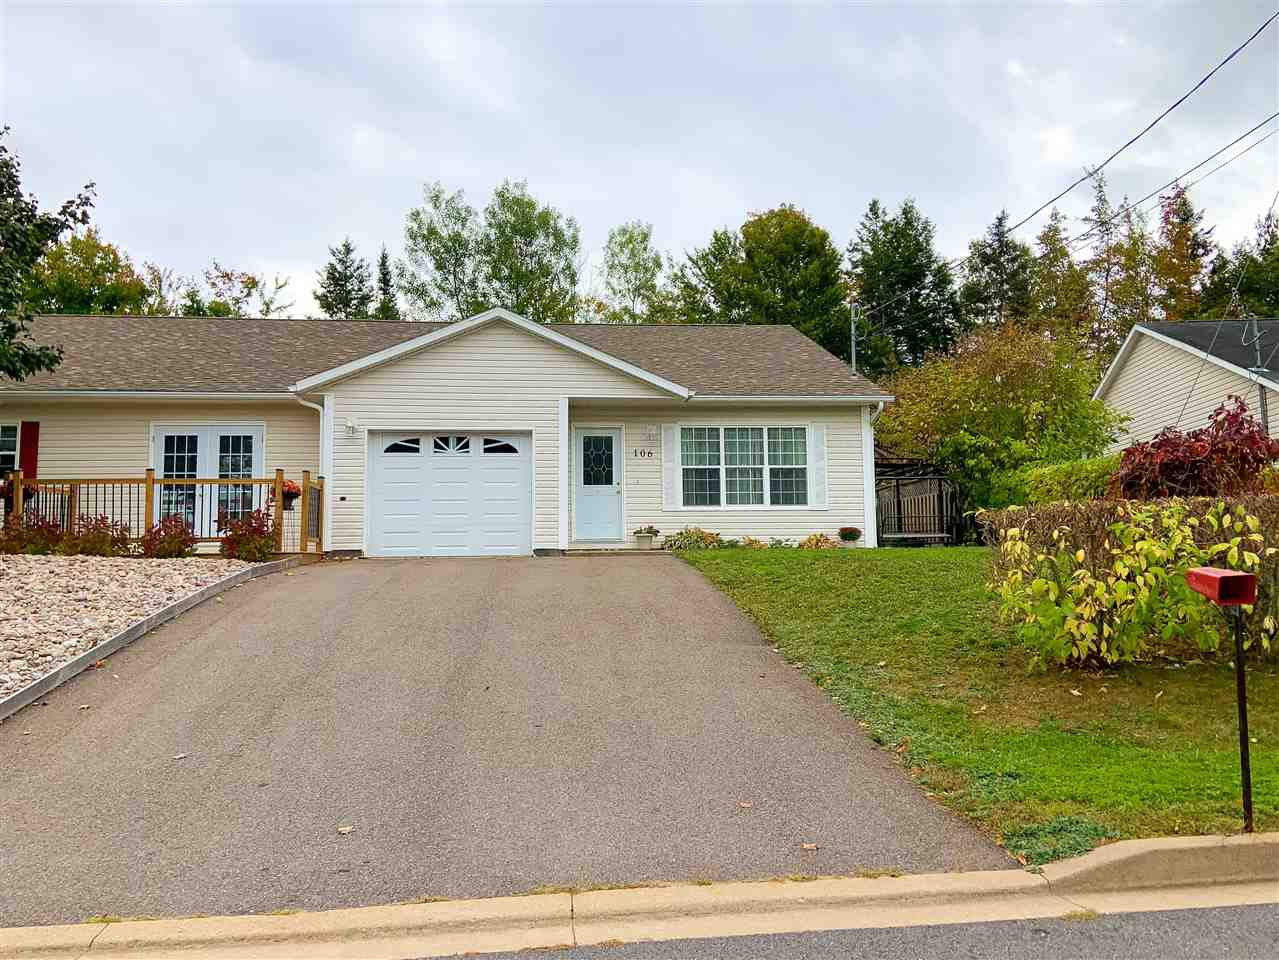 Main Photo: 106 Baden Powell Drive in Kentville: 404-Kings County Residential for sale (Annapolis Valley)  : MLS®# 202021248